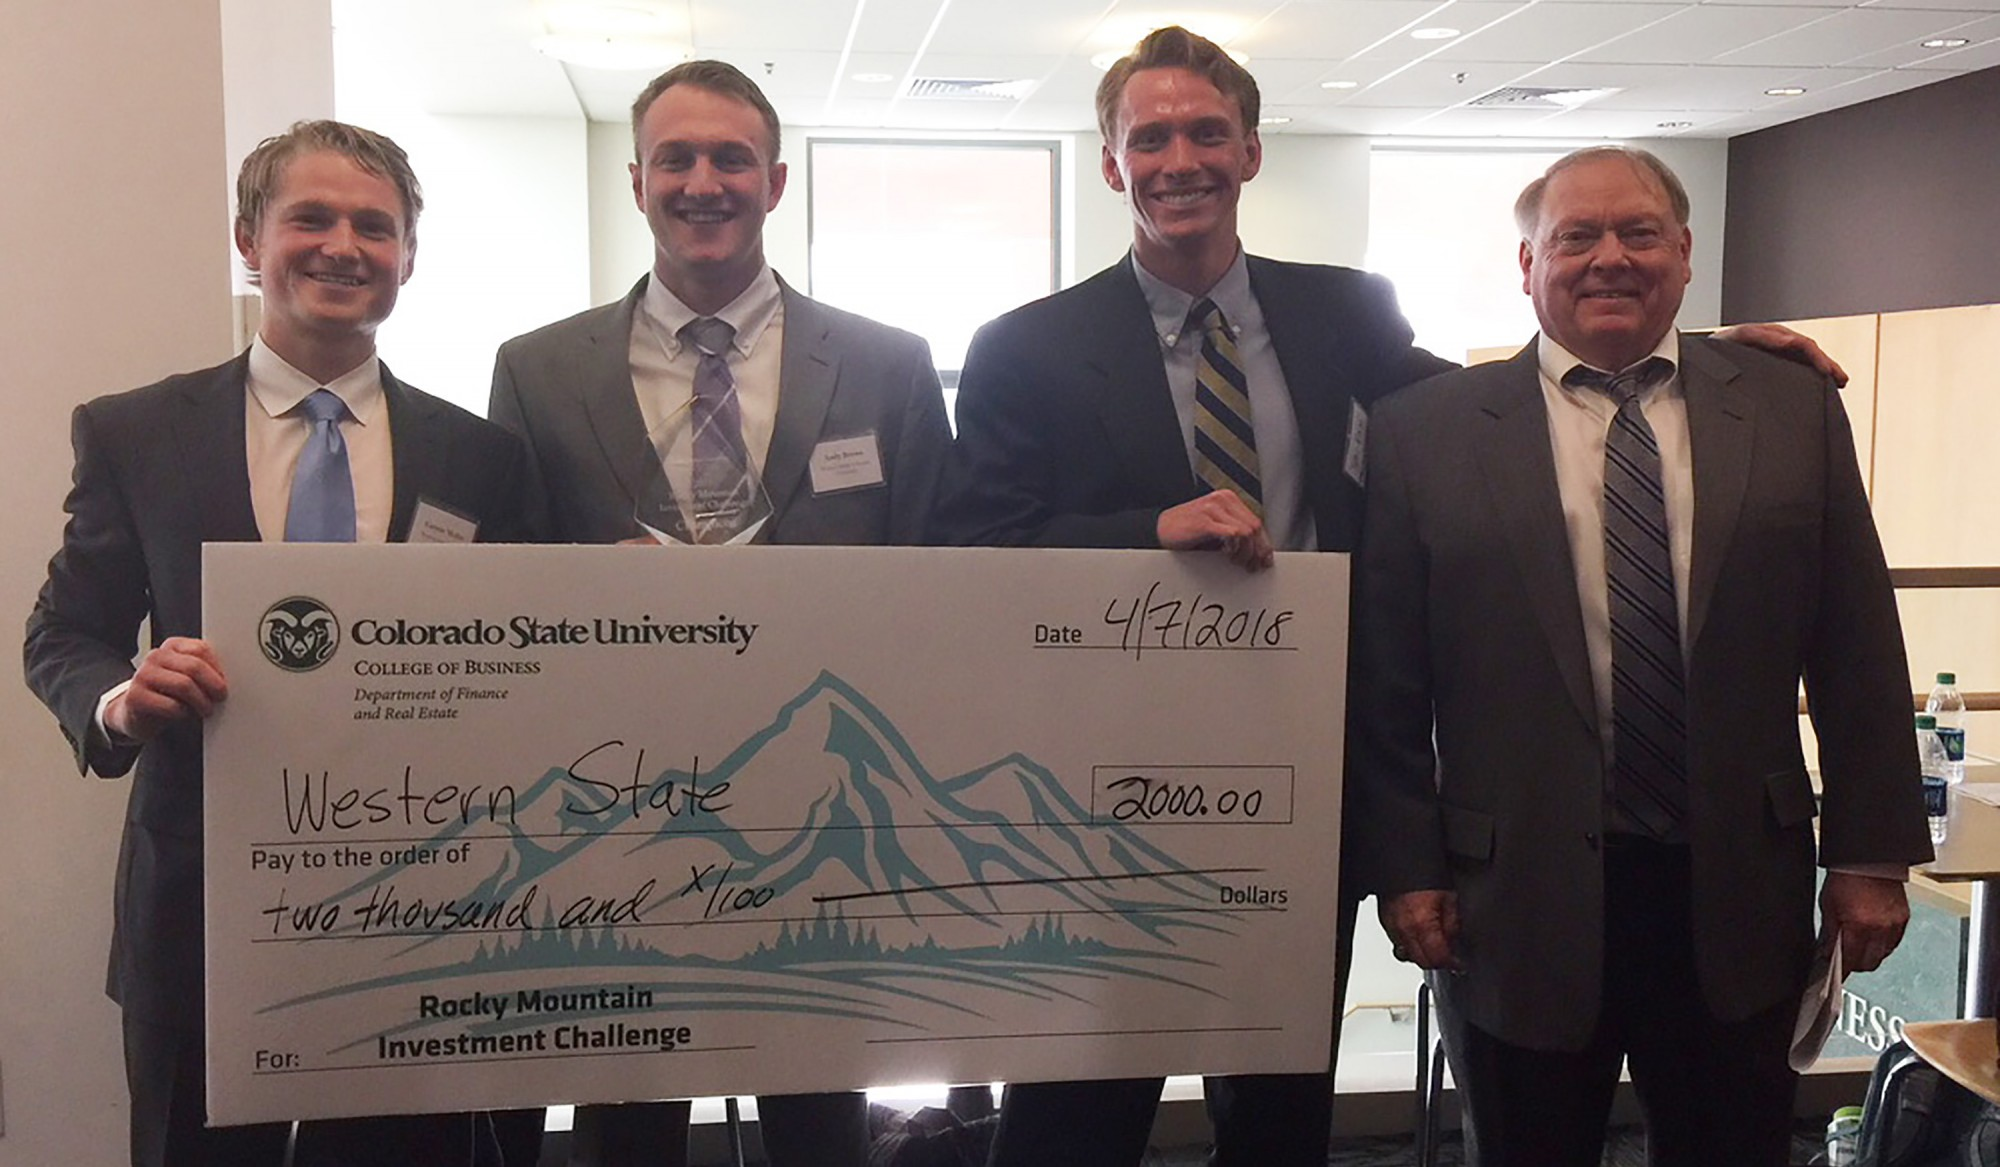 https://www.western.edu/news/finance-students-finish-first-rocky-mountain-investment-challenge